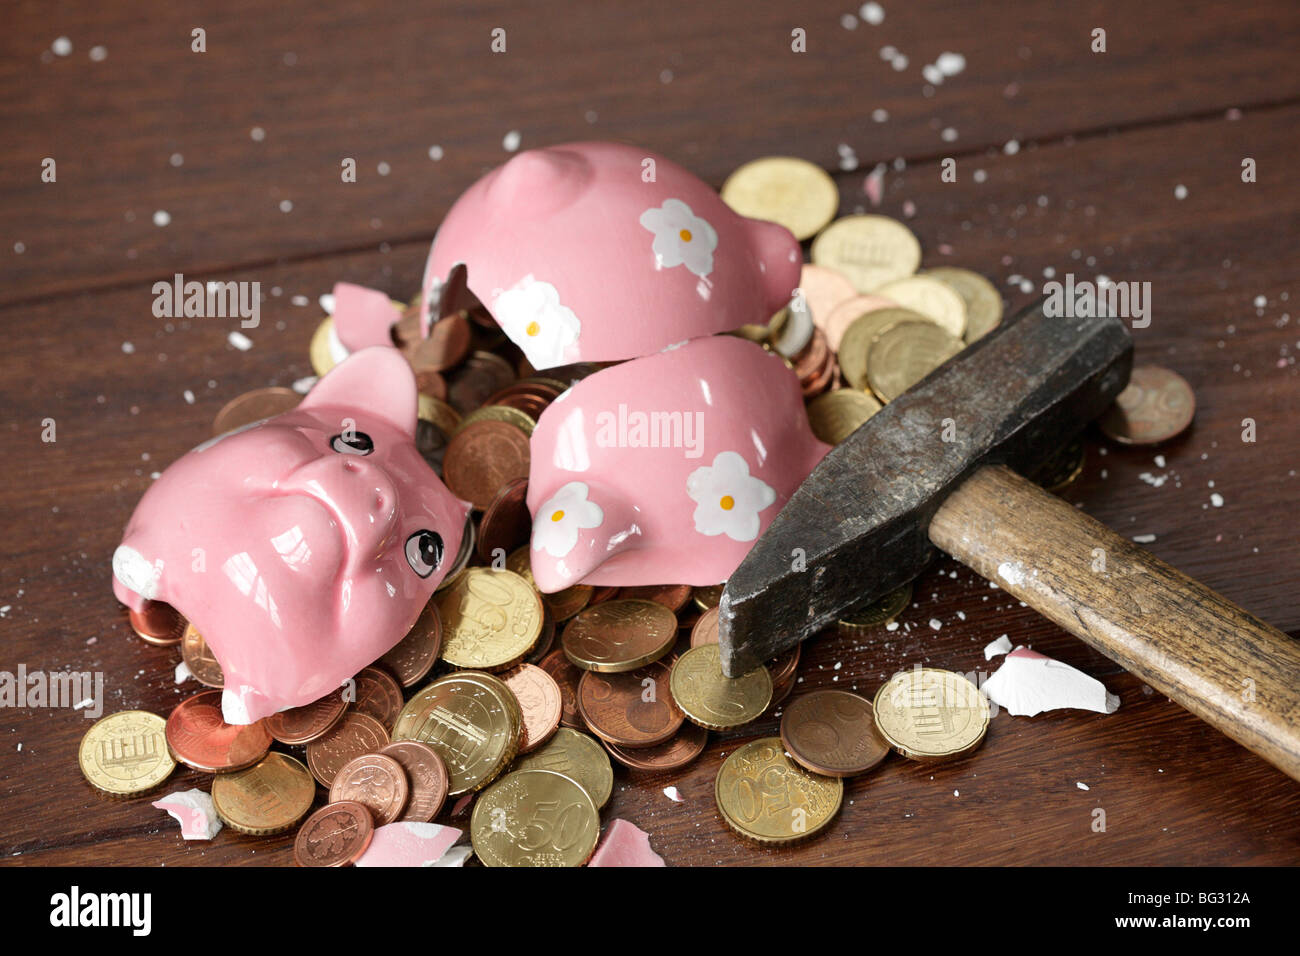 Rob the piggy bank - Stock Image